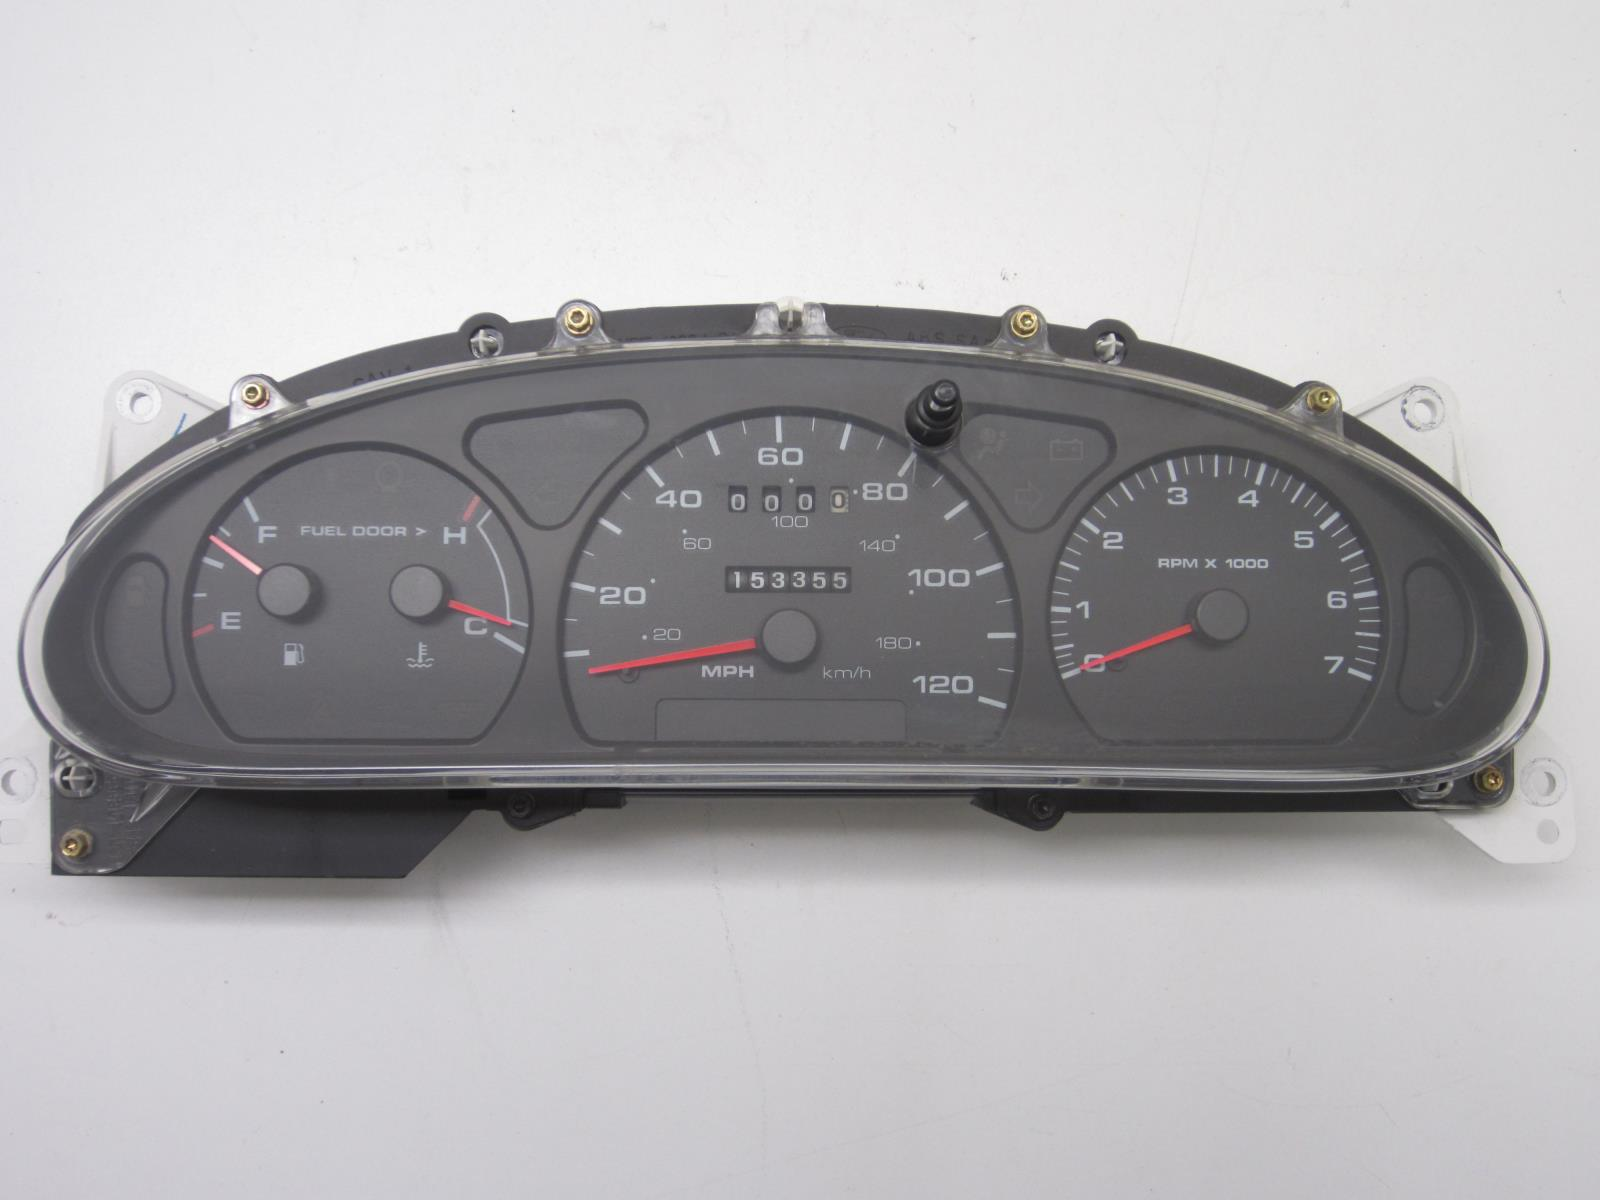 hight resolution of details about instrument cluster for 2000 ford taurus w o flex 2000 mercury sable 257 03731